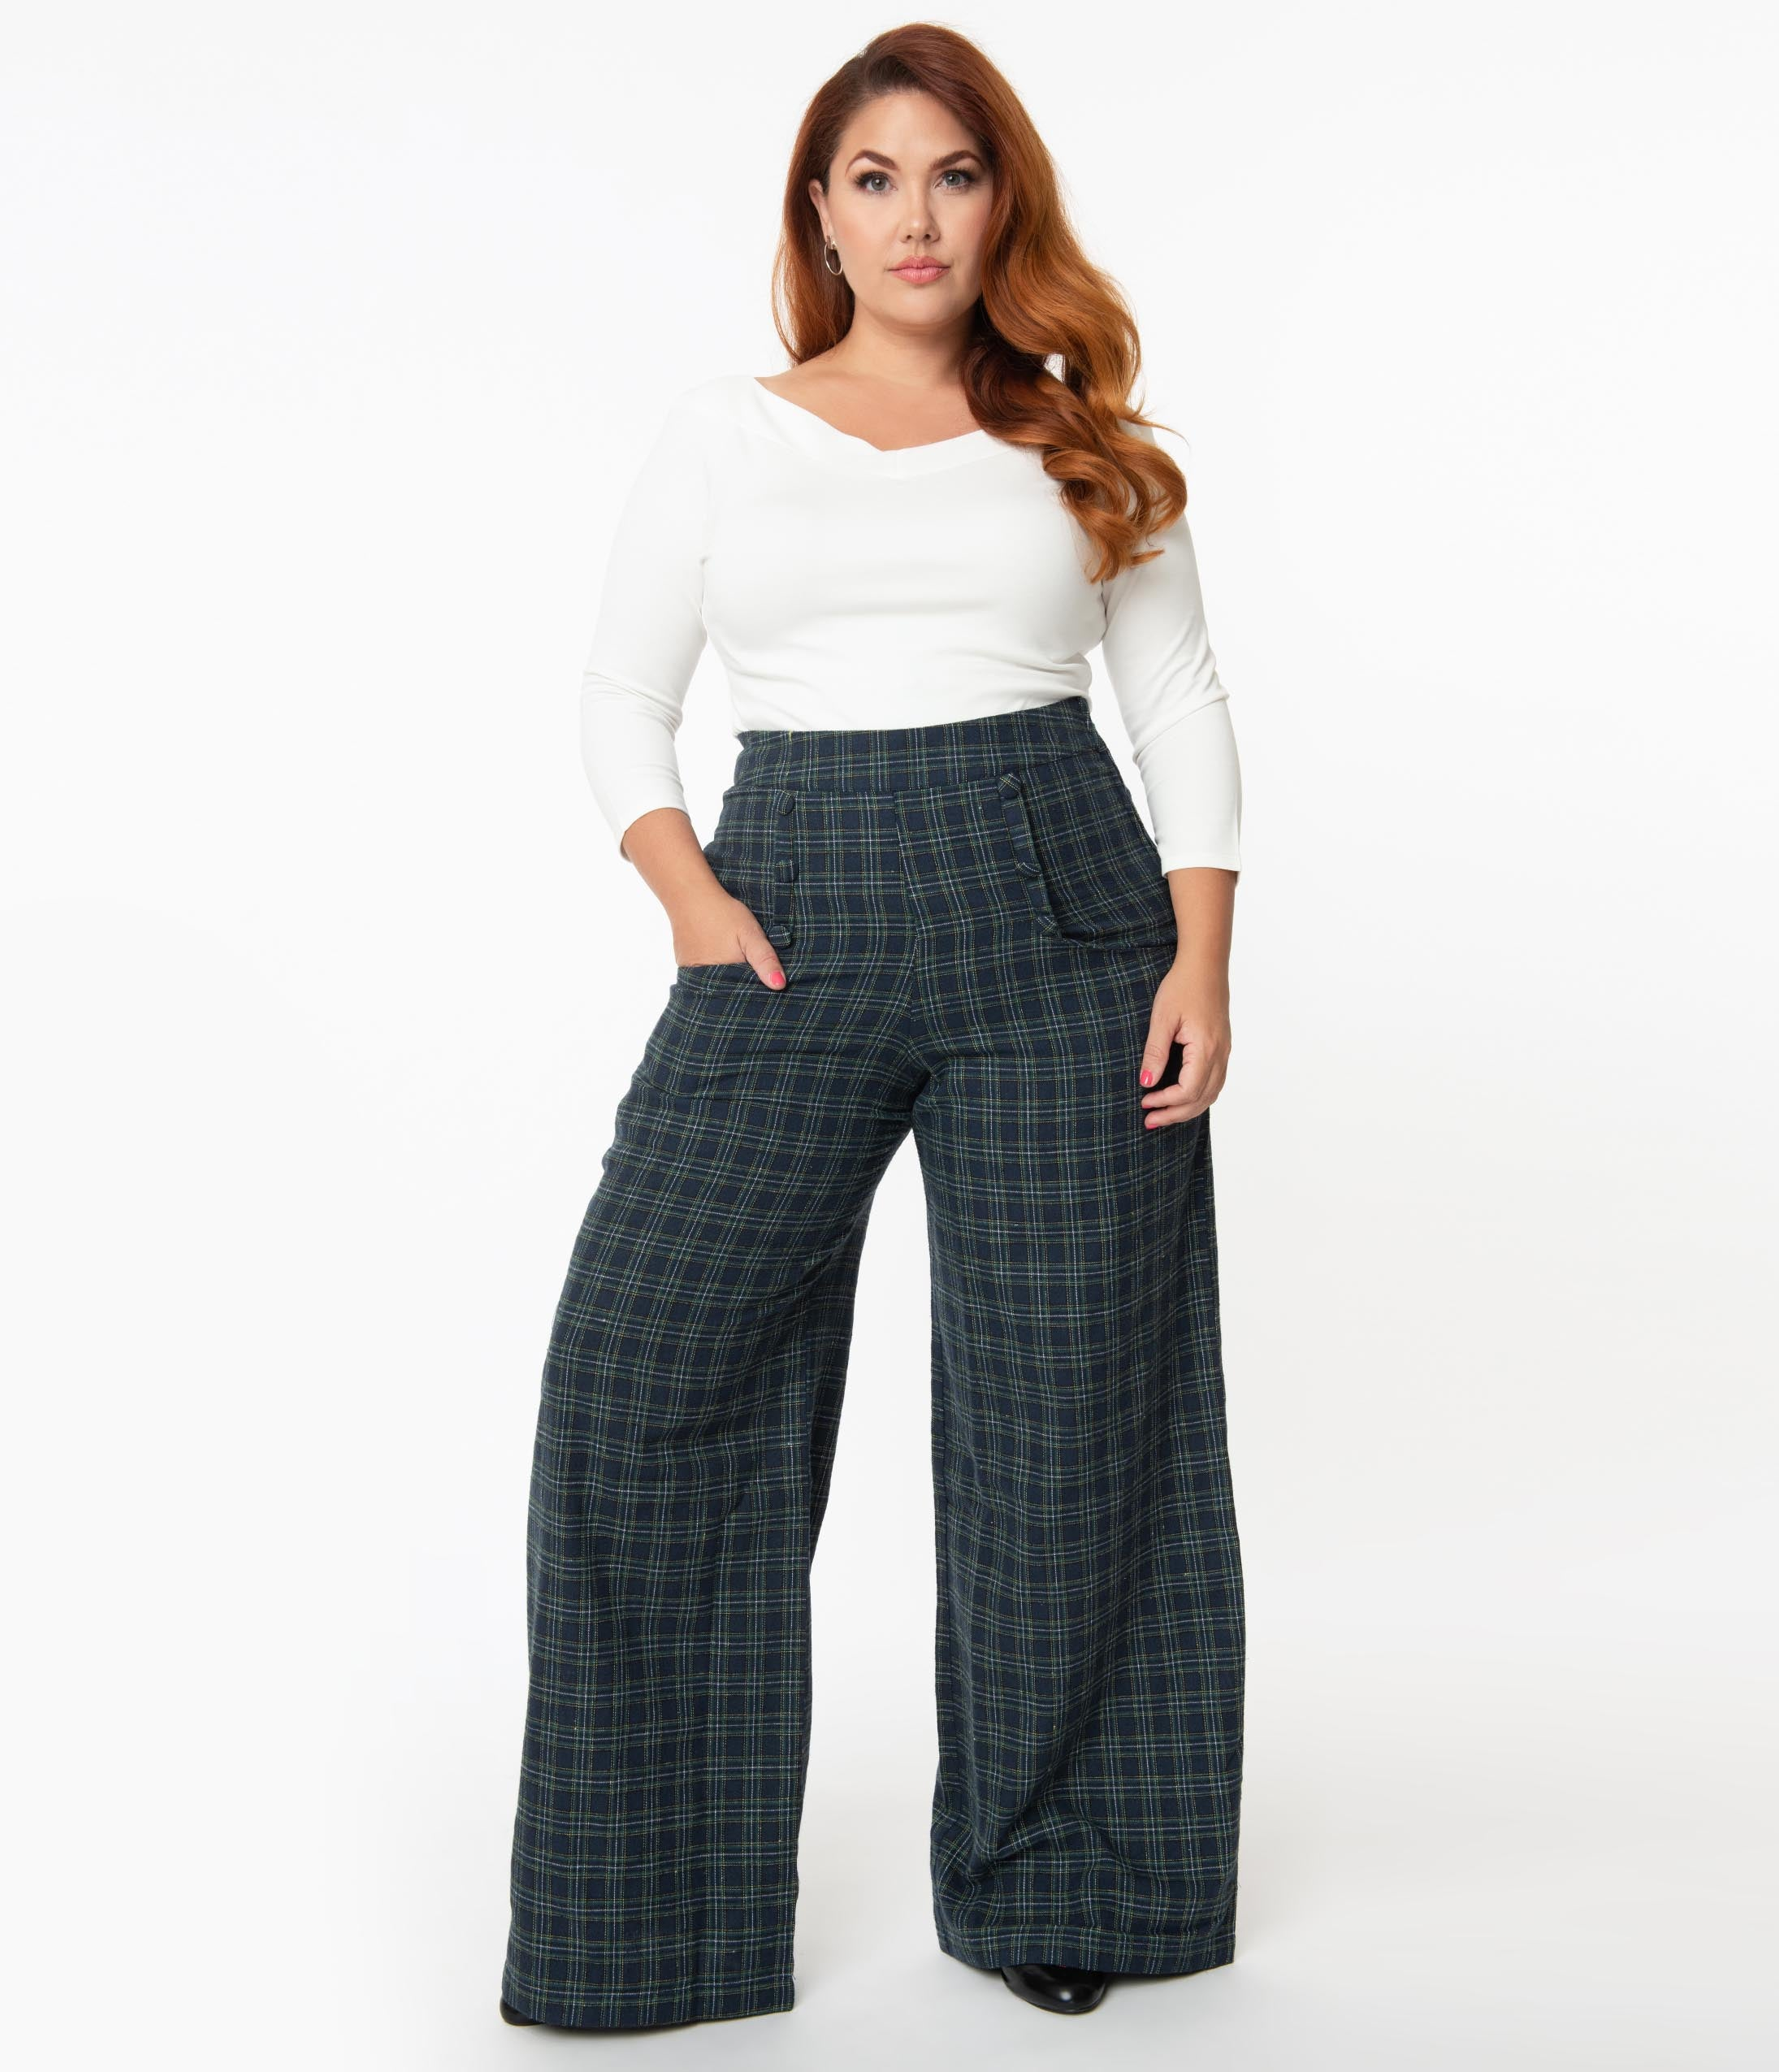 1940s Swing Pants & Sailor Trousers- Wide Leg, High Waist Unique Vintage Plus Size 1940S Navy  Green Plaid High Waist Ginger Pants $68.00 AT vintagedancer.com